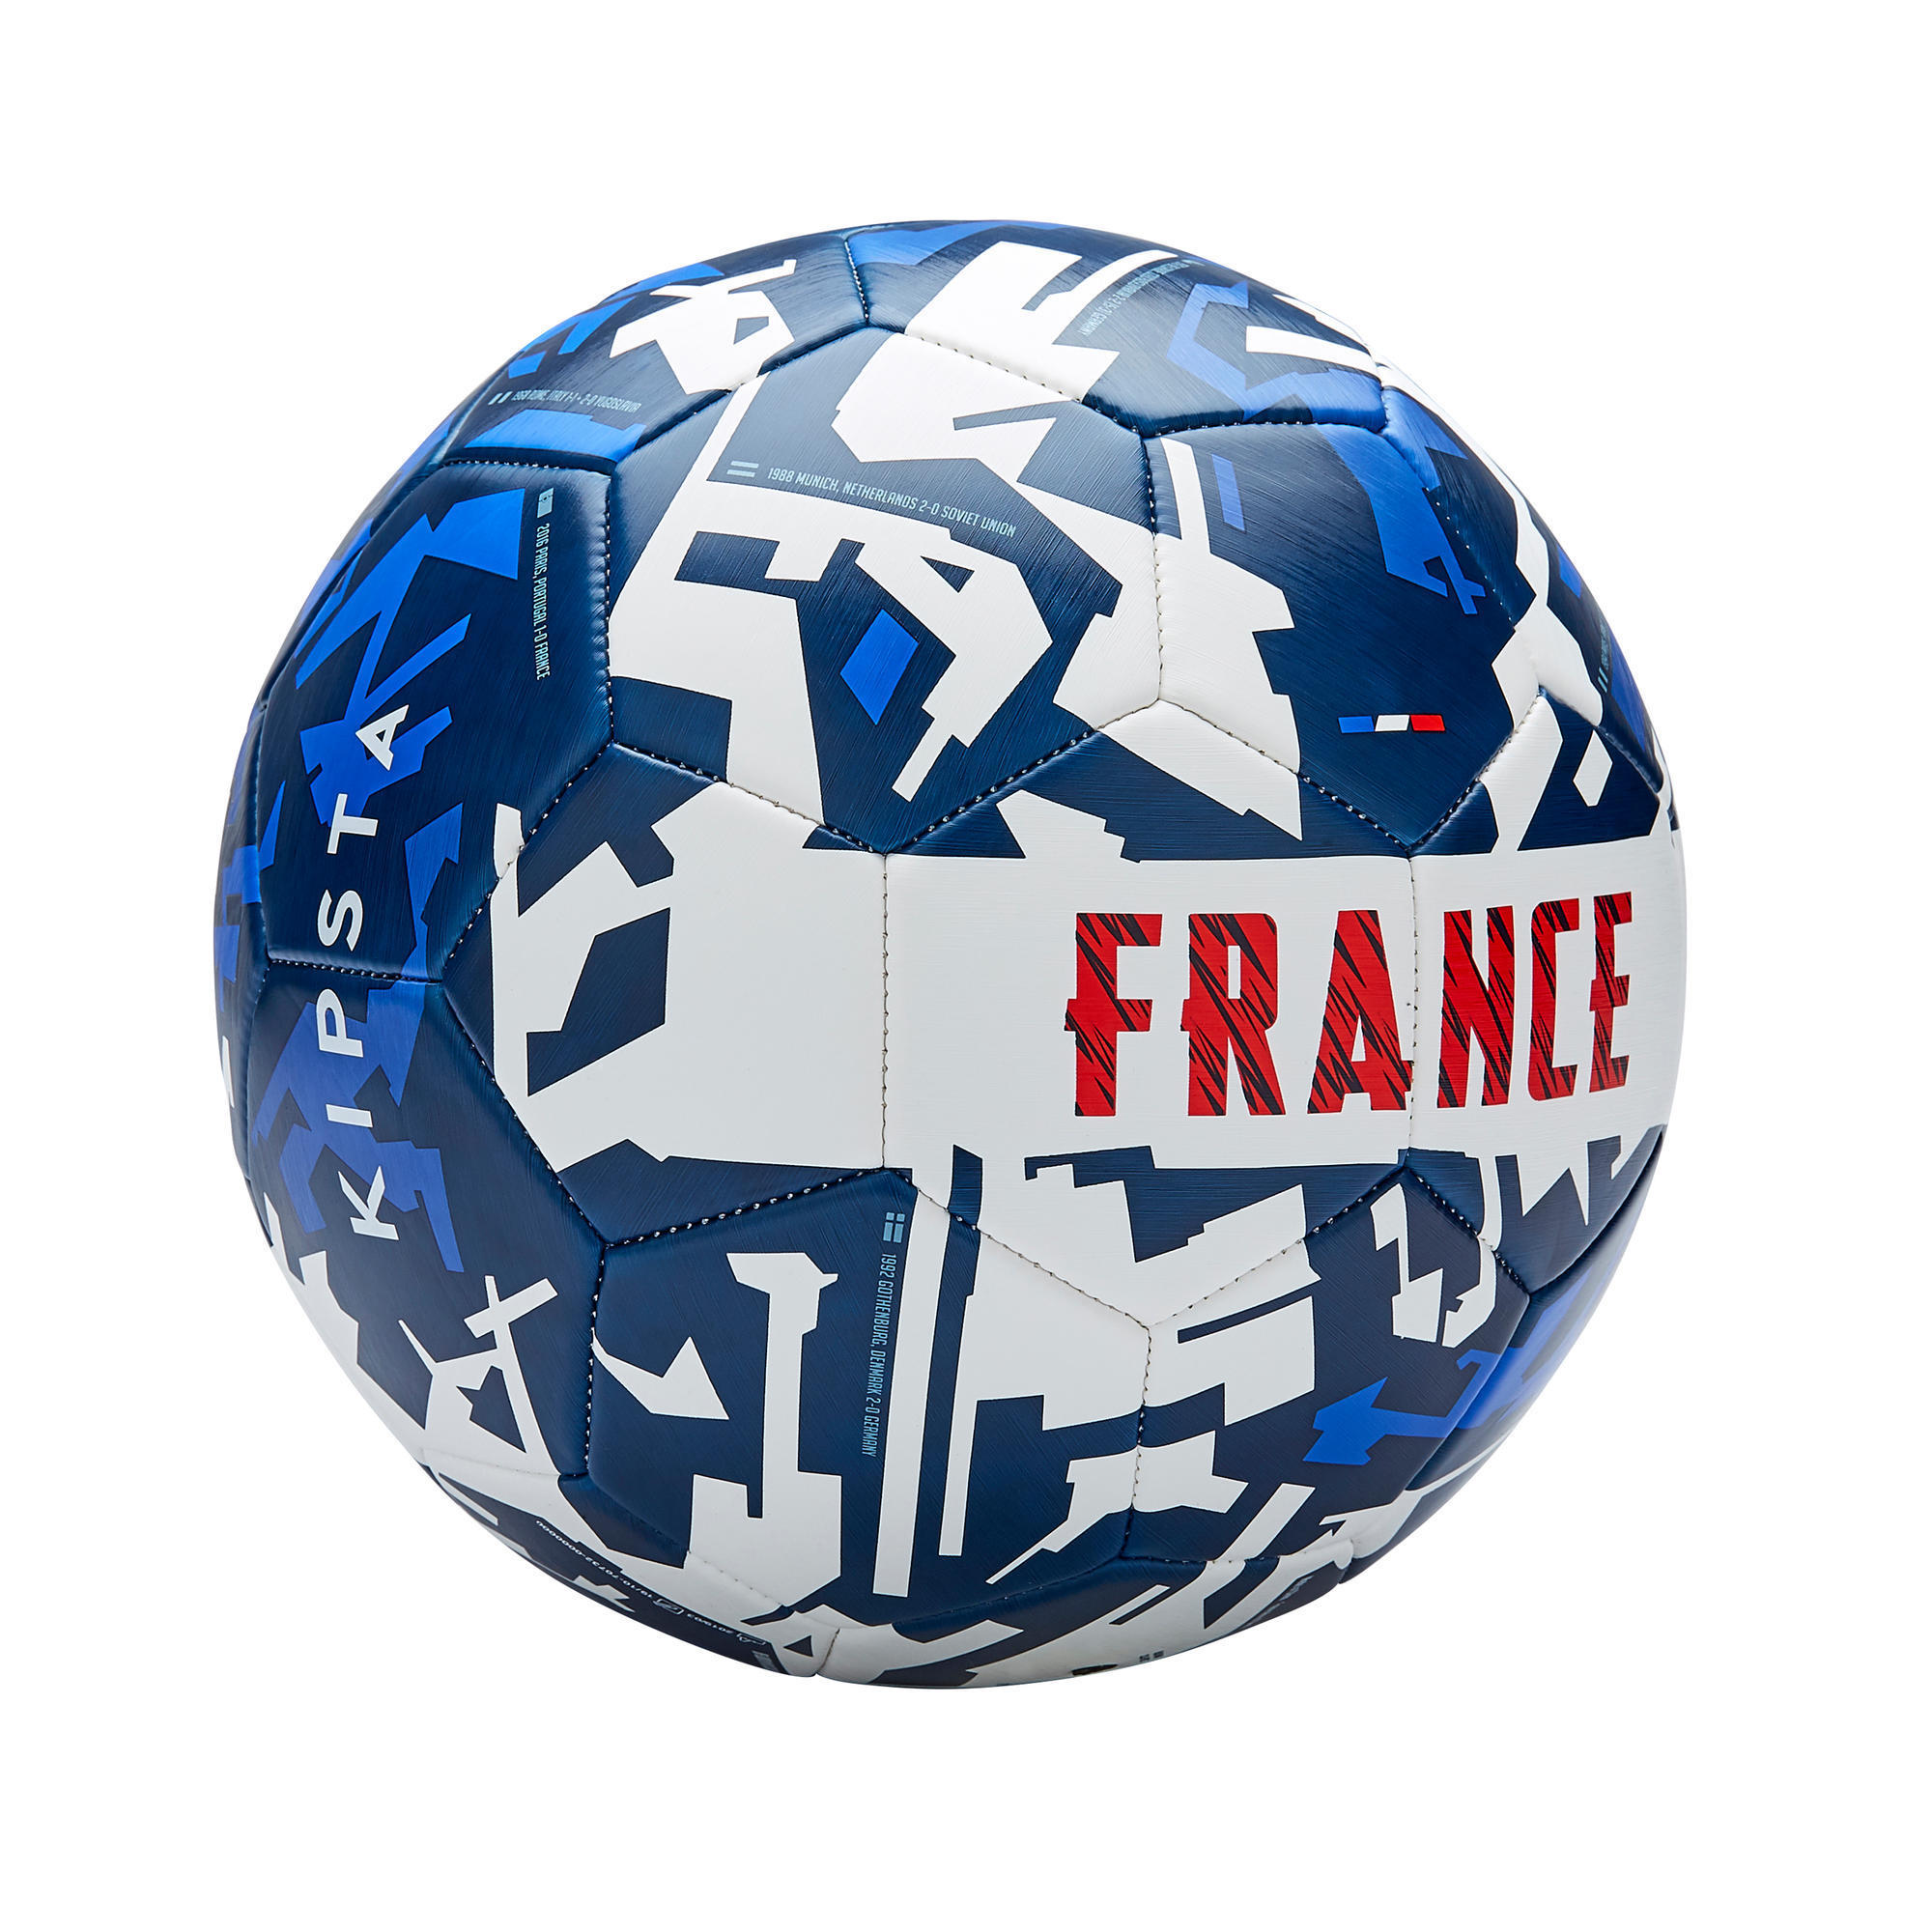 Ballon de <strong>football</strong> france 2020 taille 5 bleu blanc rouge kipsta